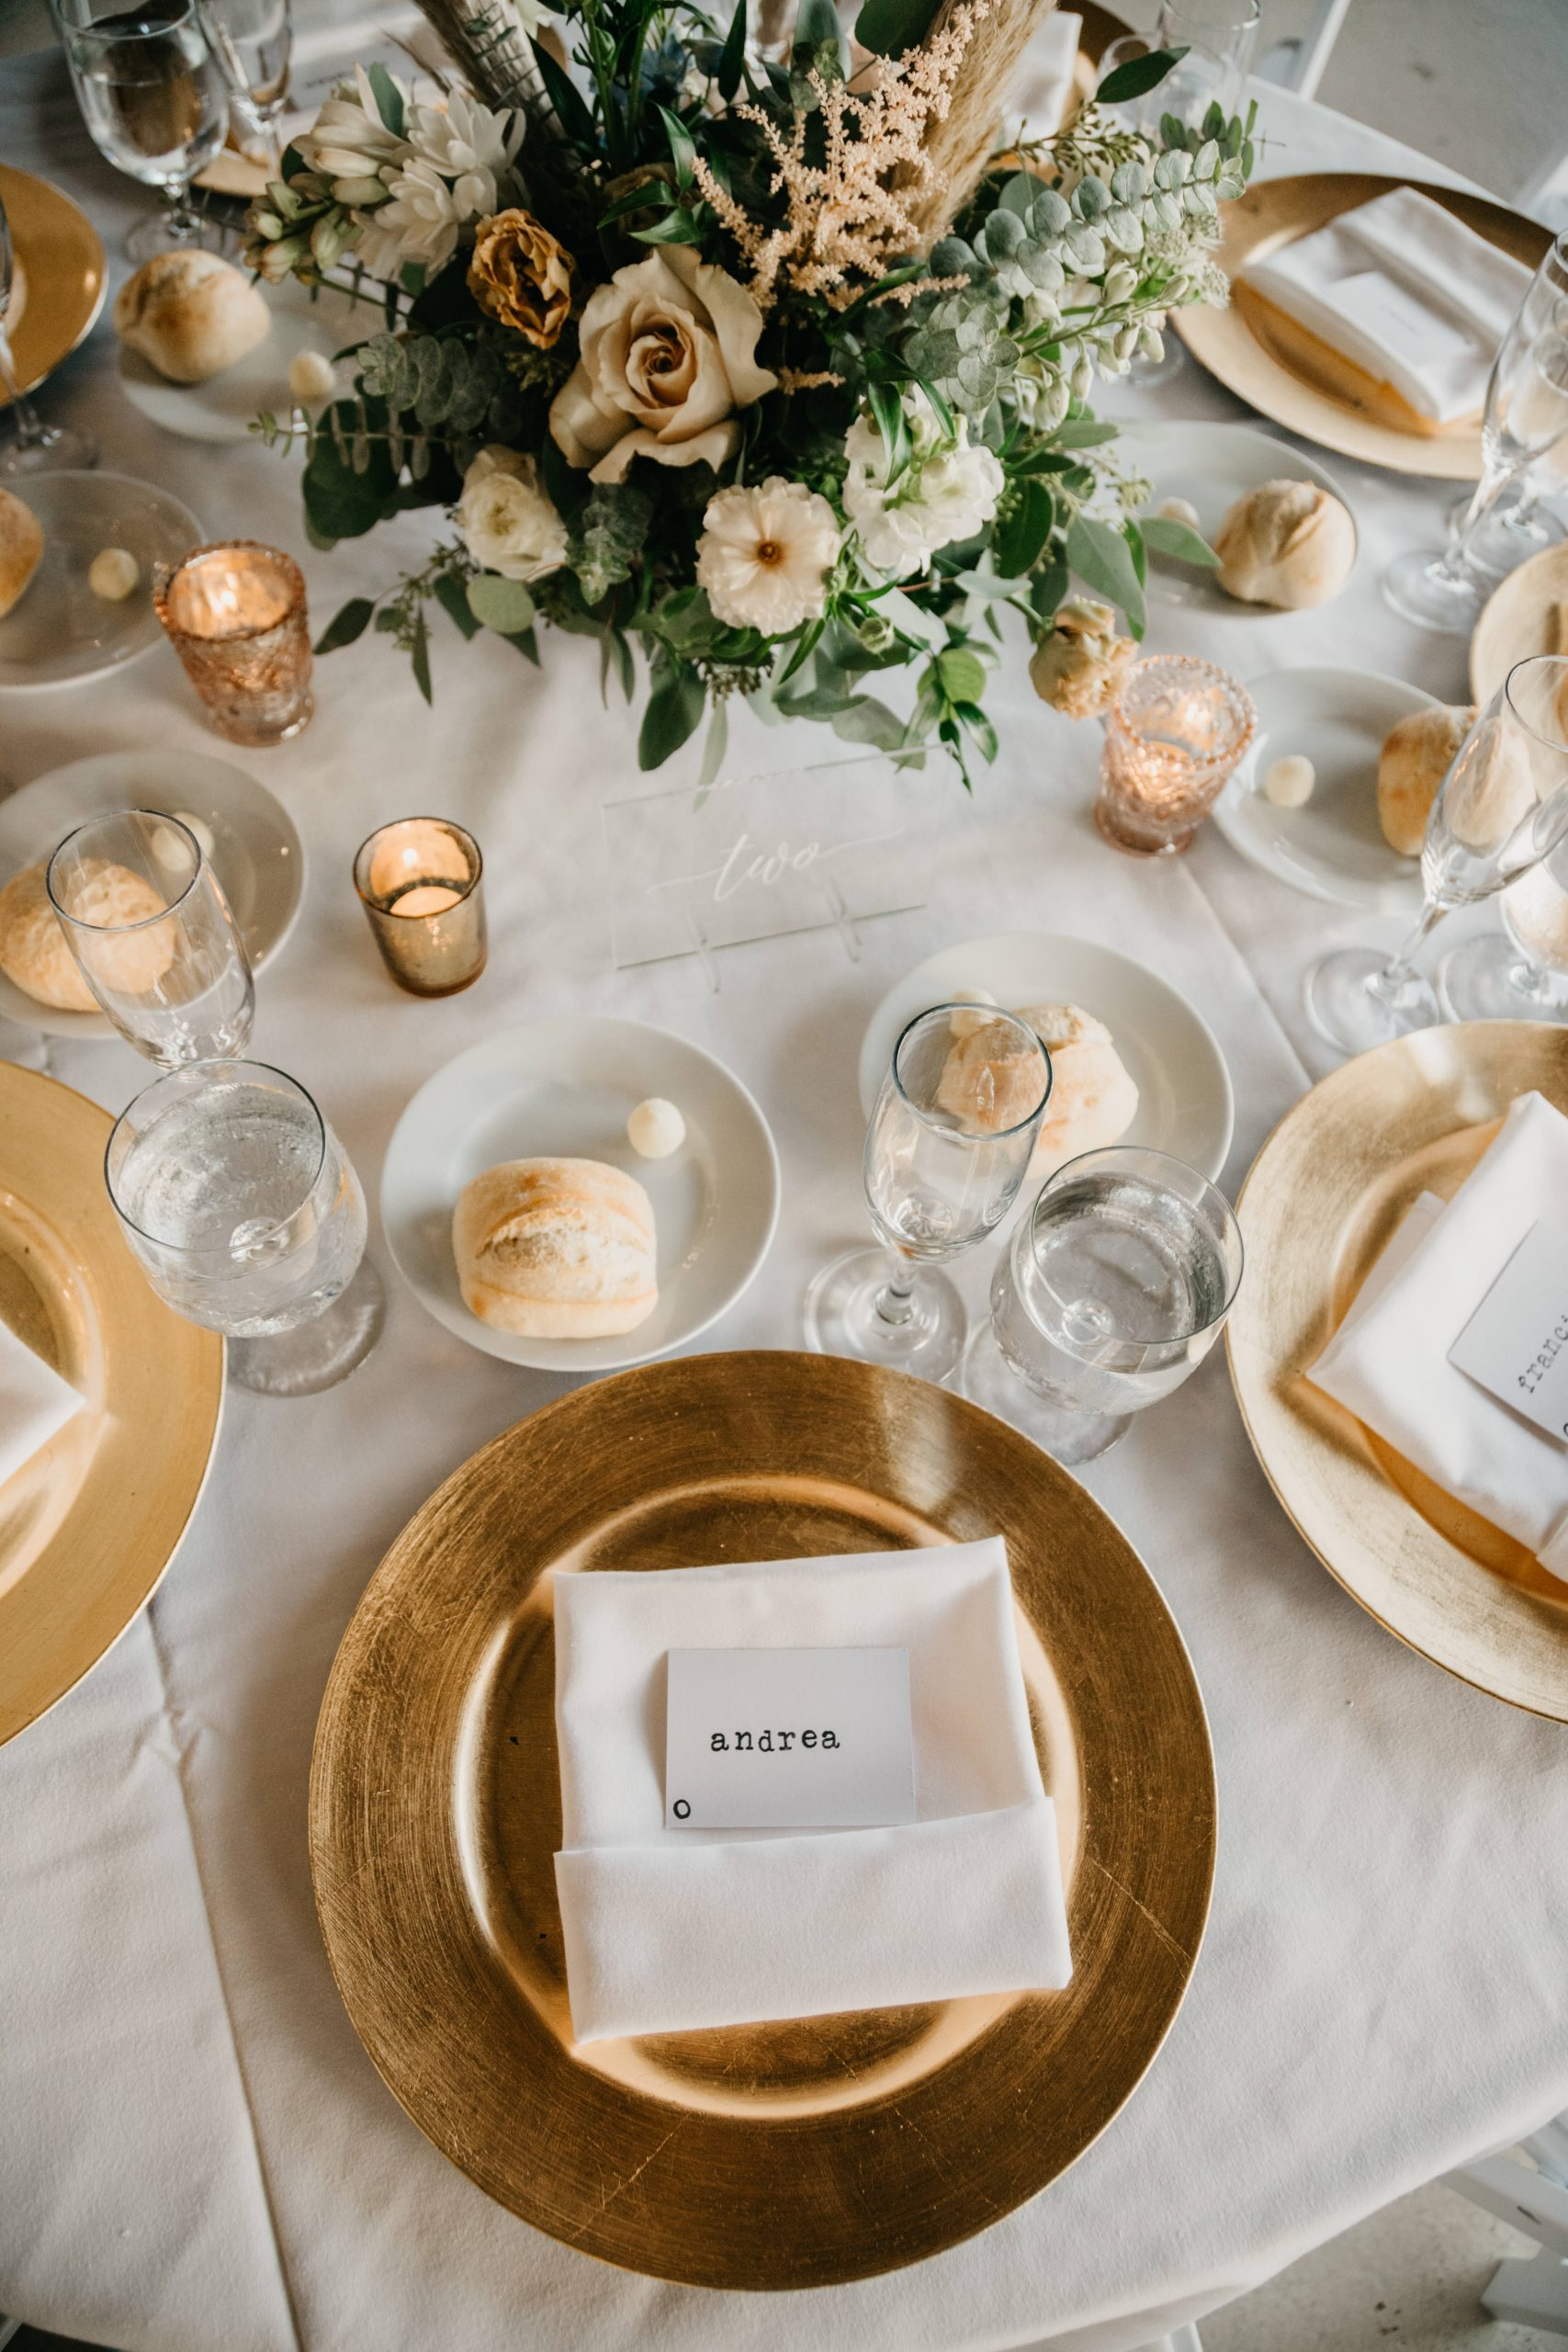 Elegant and simple wedding table decor at Dana Point Yacht Club, The Montage Laguna Beach Wedding Bridal Portraits, image by Fatima Elreda Photo